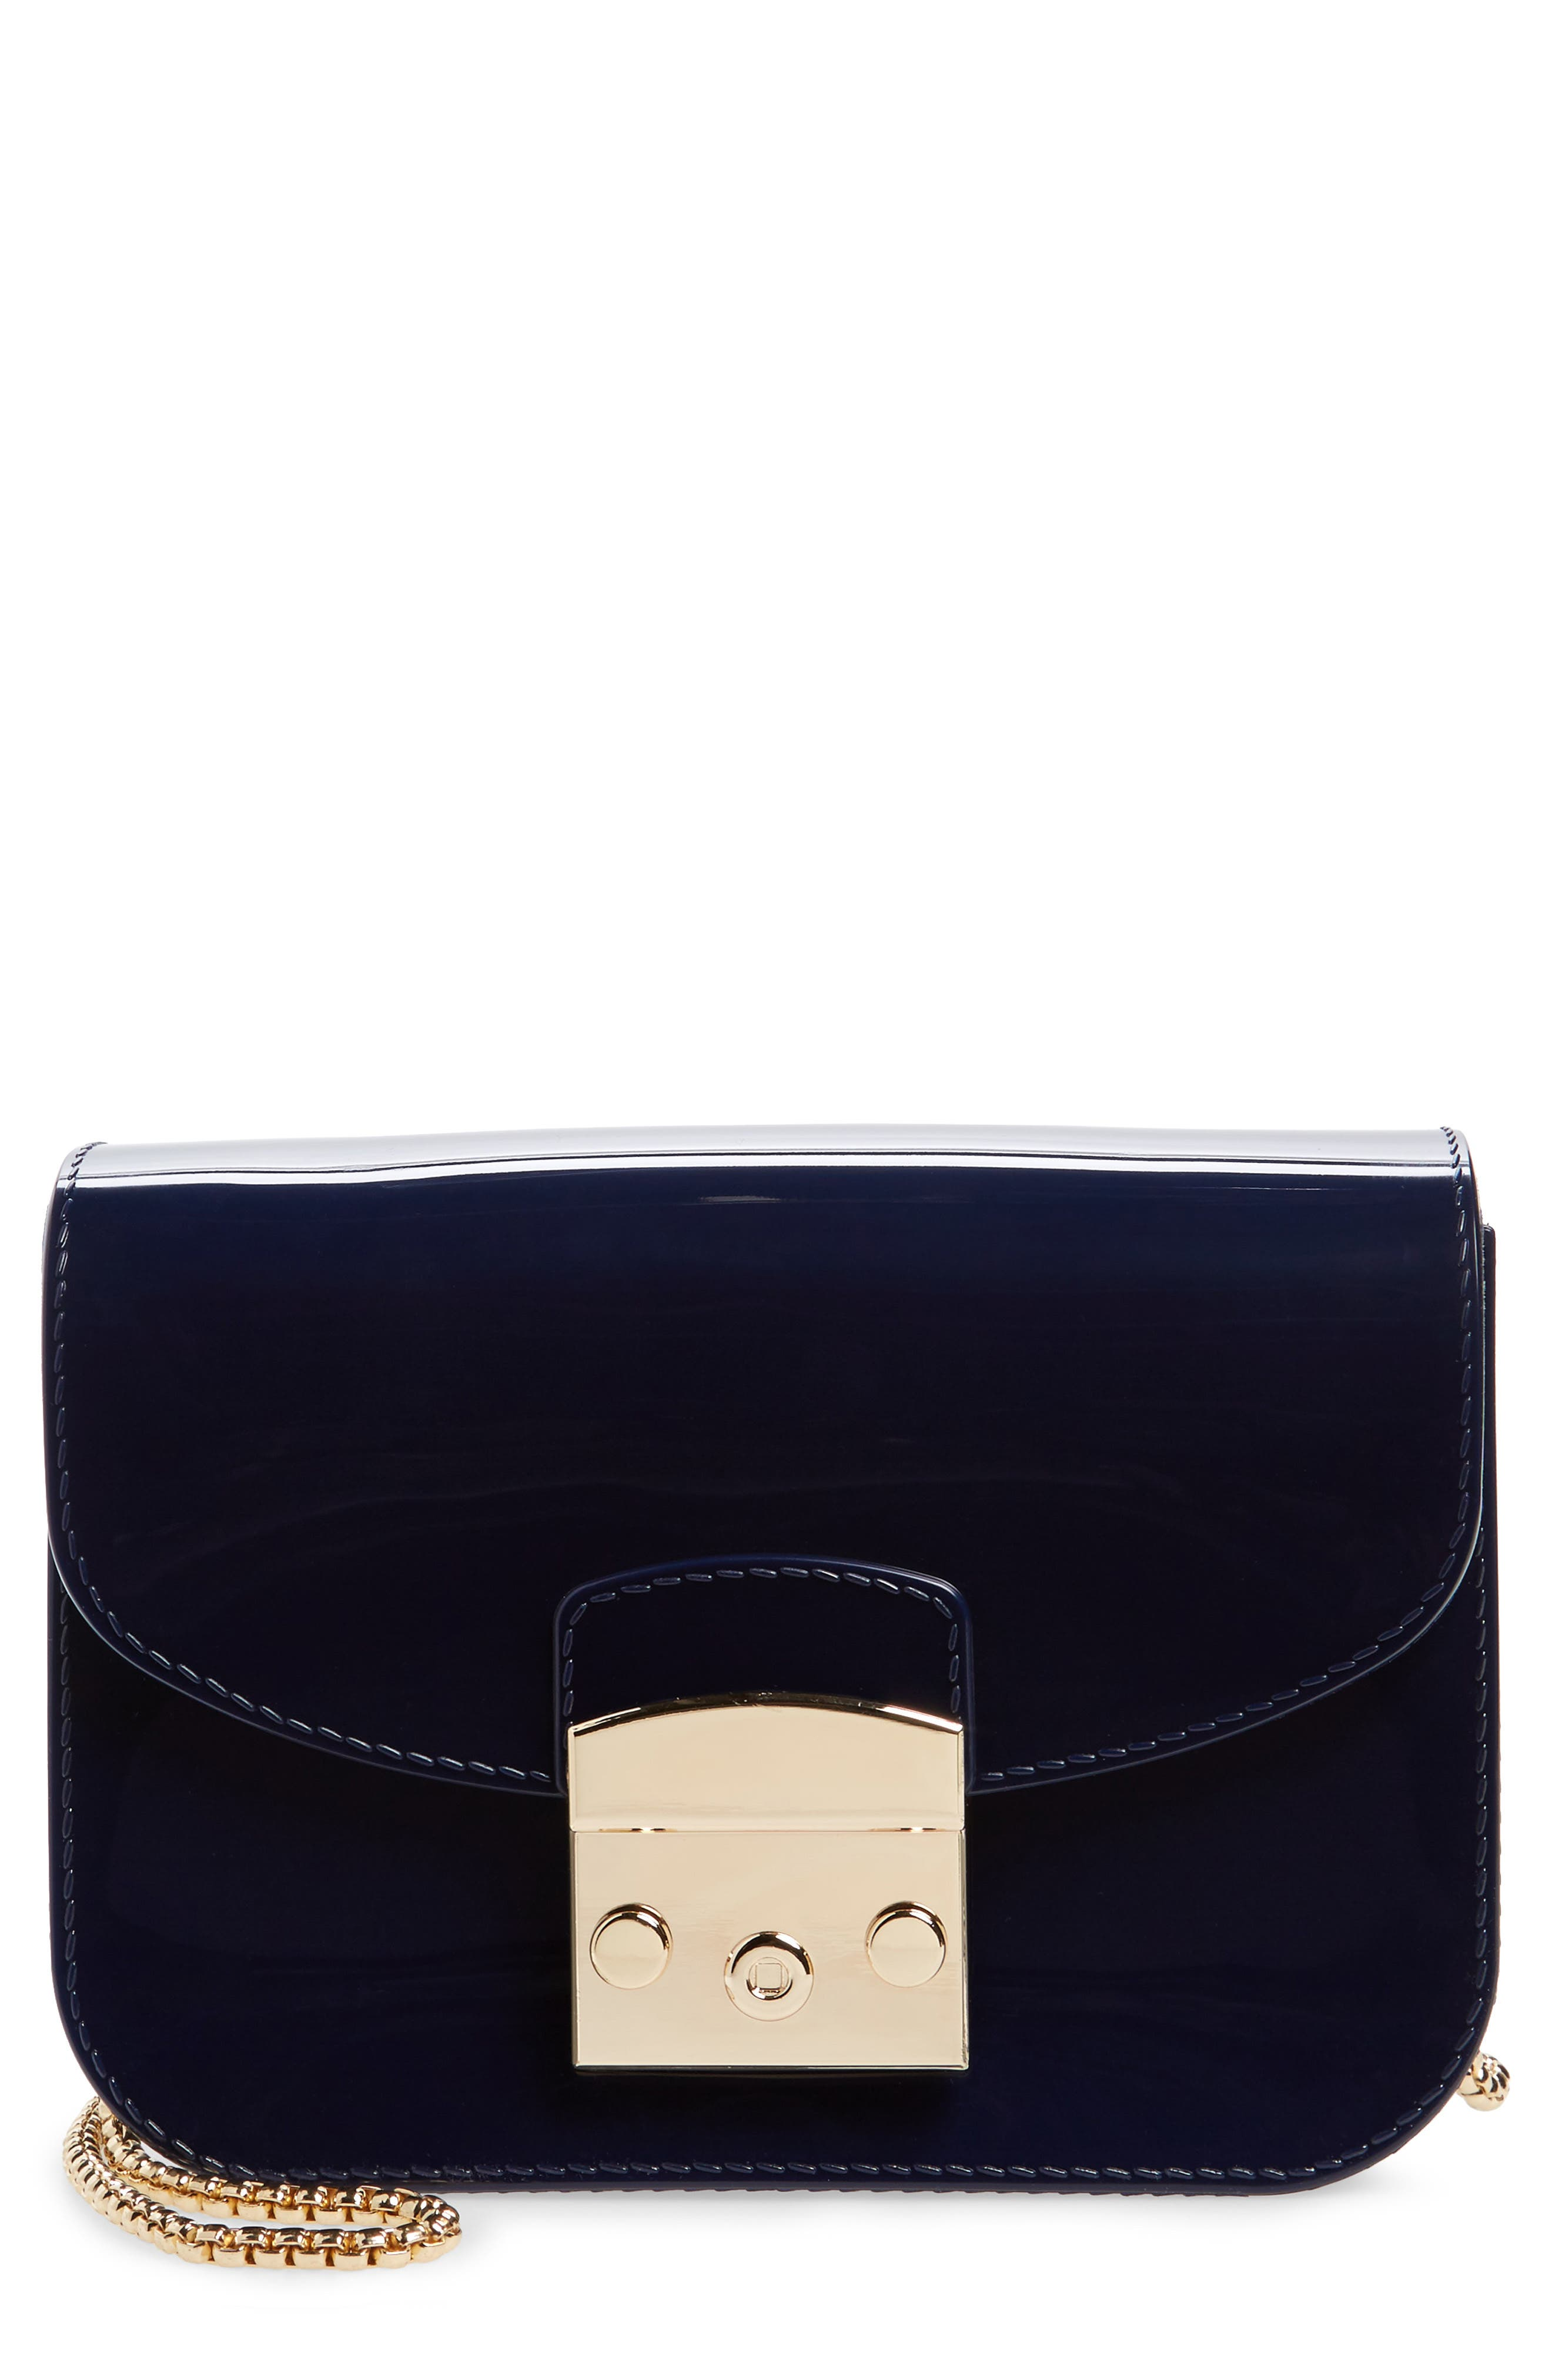 Jelly Shoulder Bag,                         Main,                         color, Navy